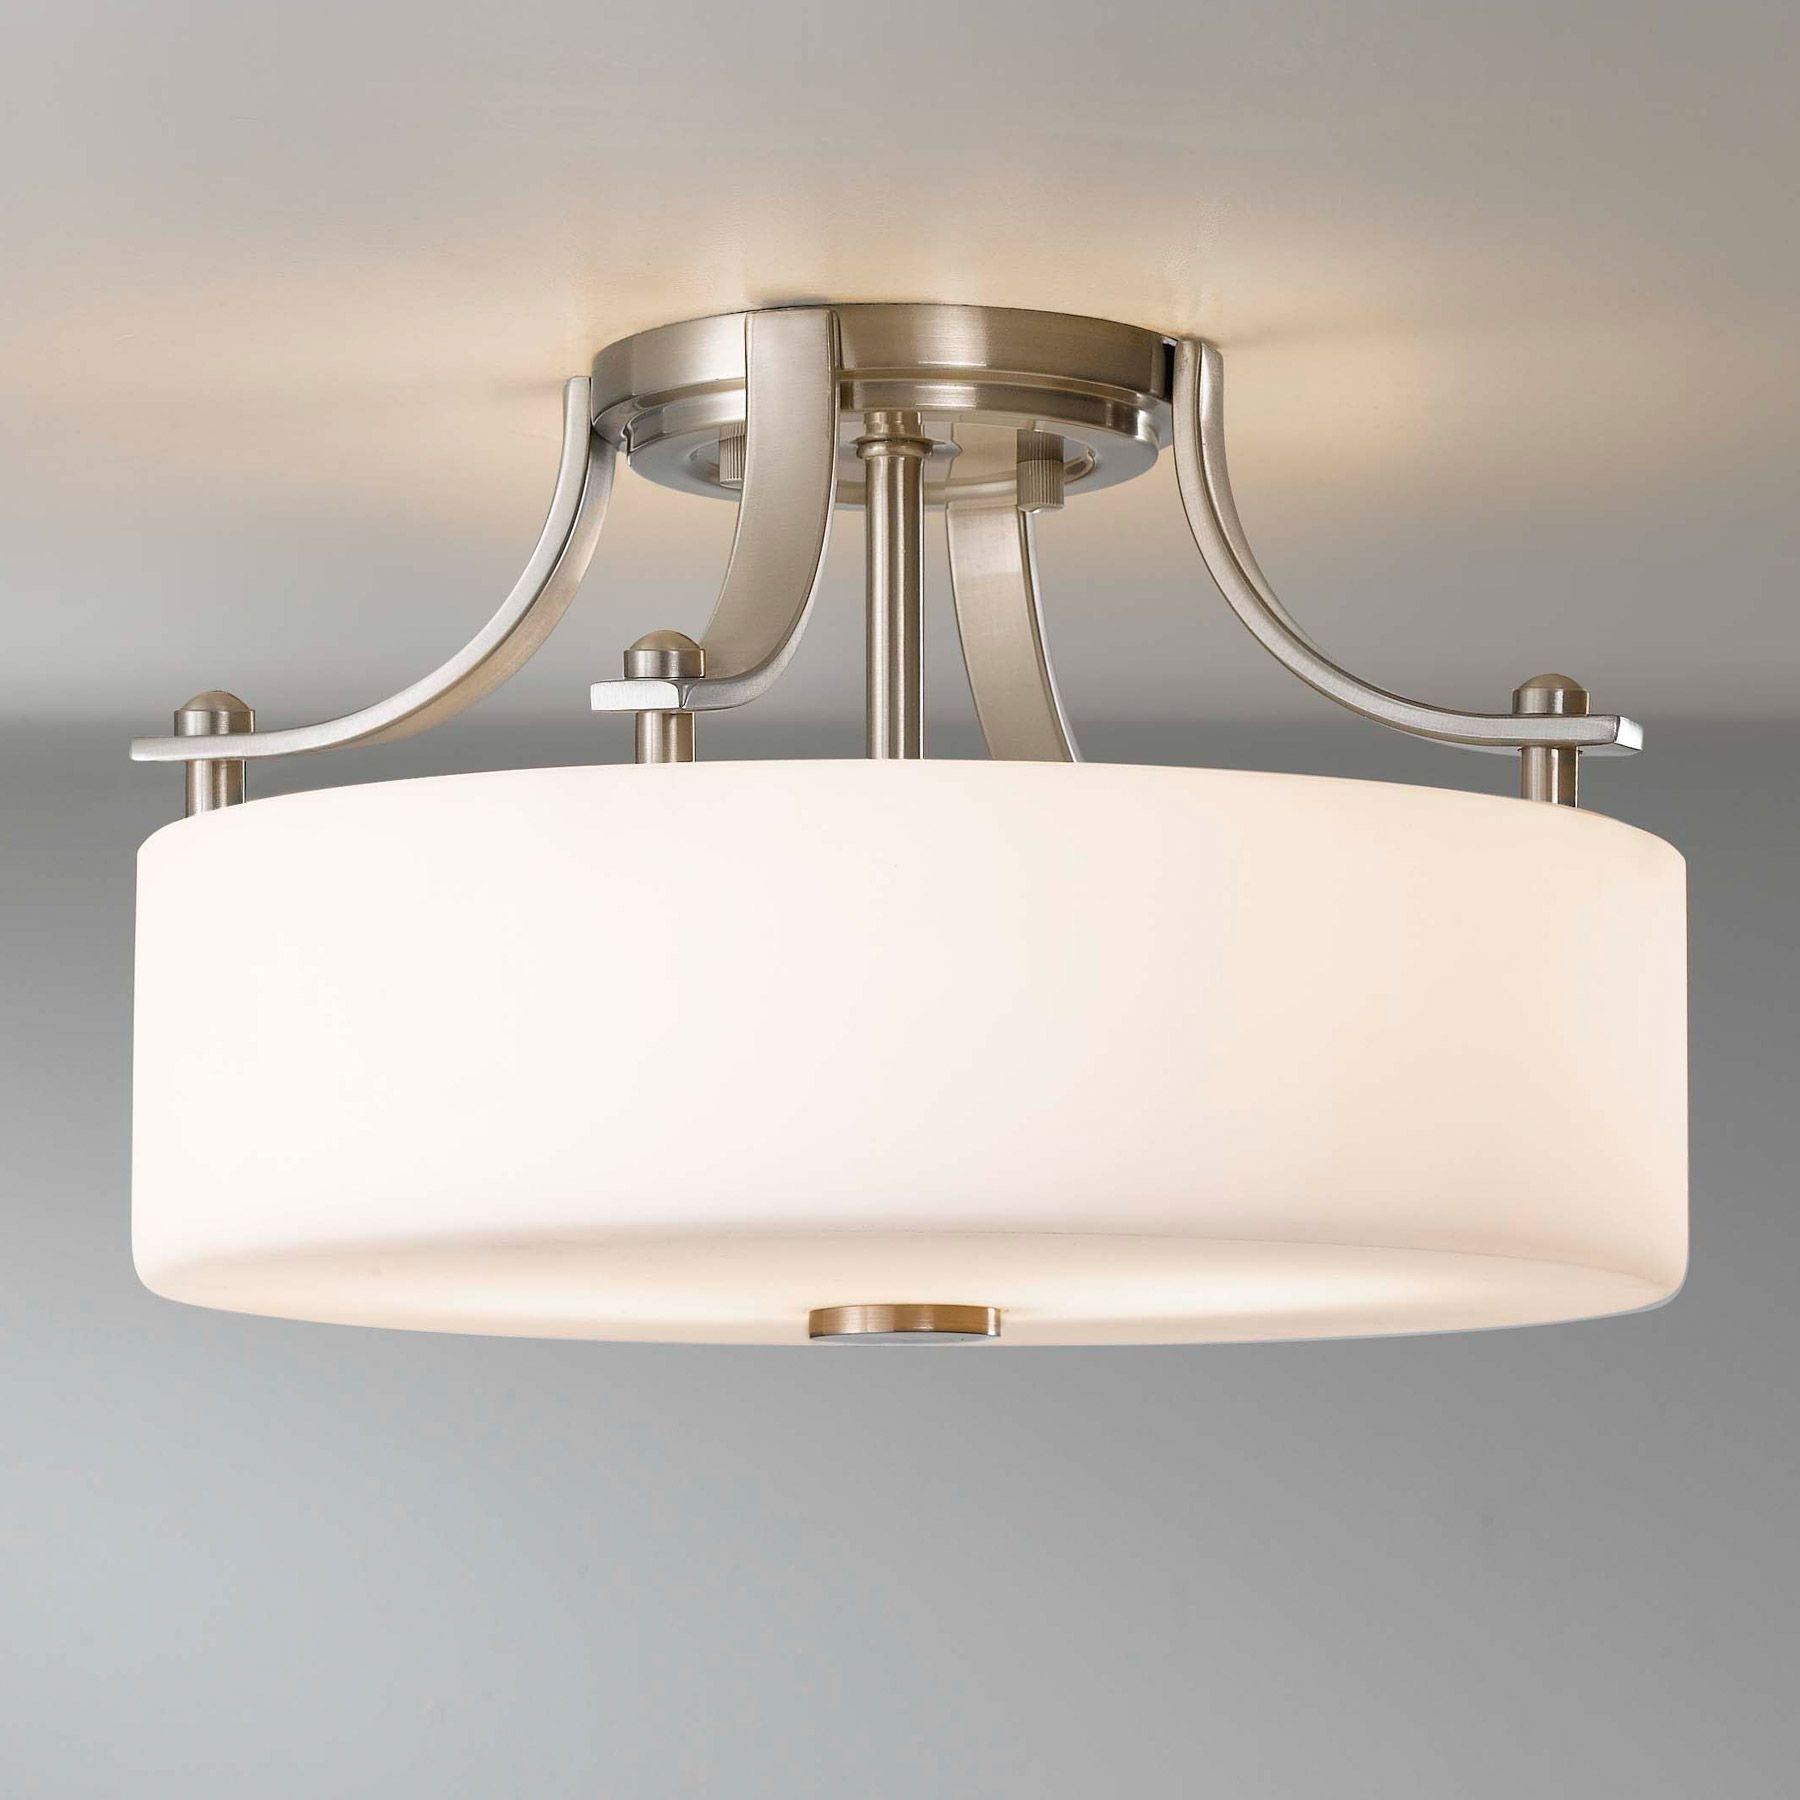 Kitchen Drum Light White Flushmount Light Fixture Flush Mount Ceiling Light